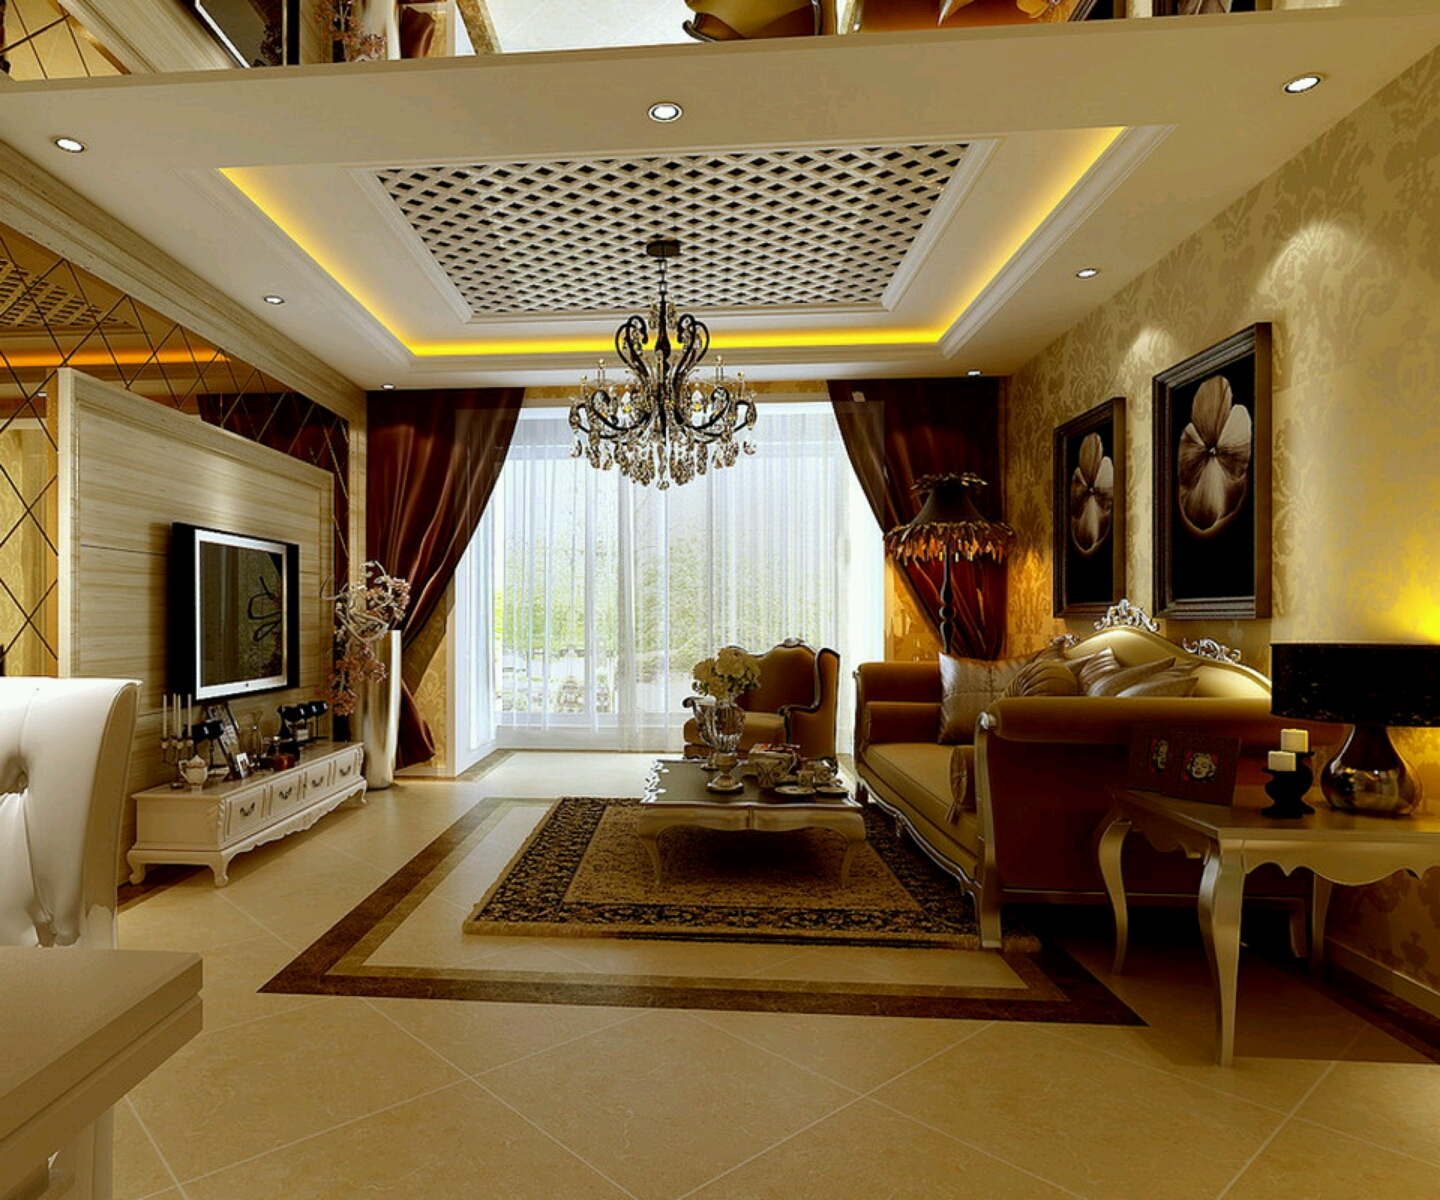 New home designs latest luxury homes interior decoration for Home design ideas living room